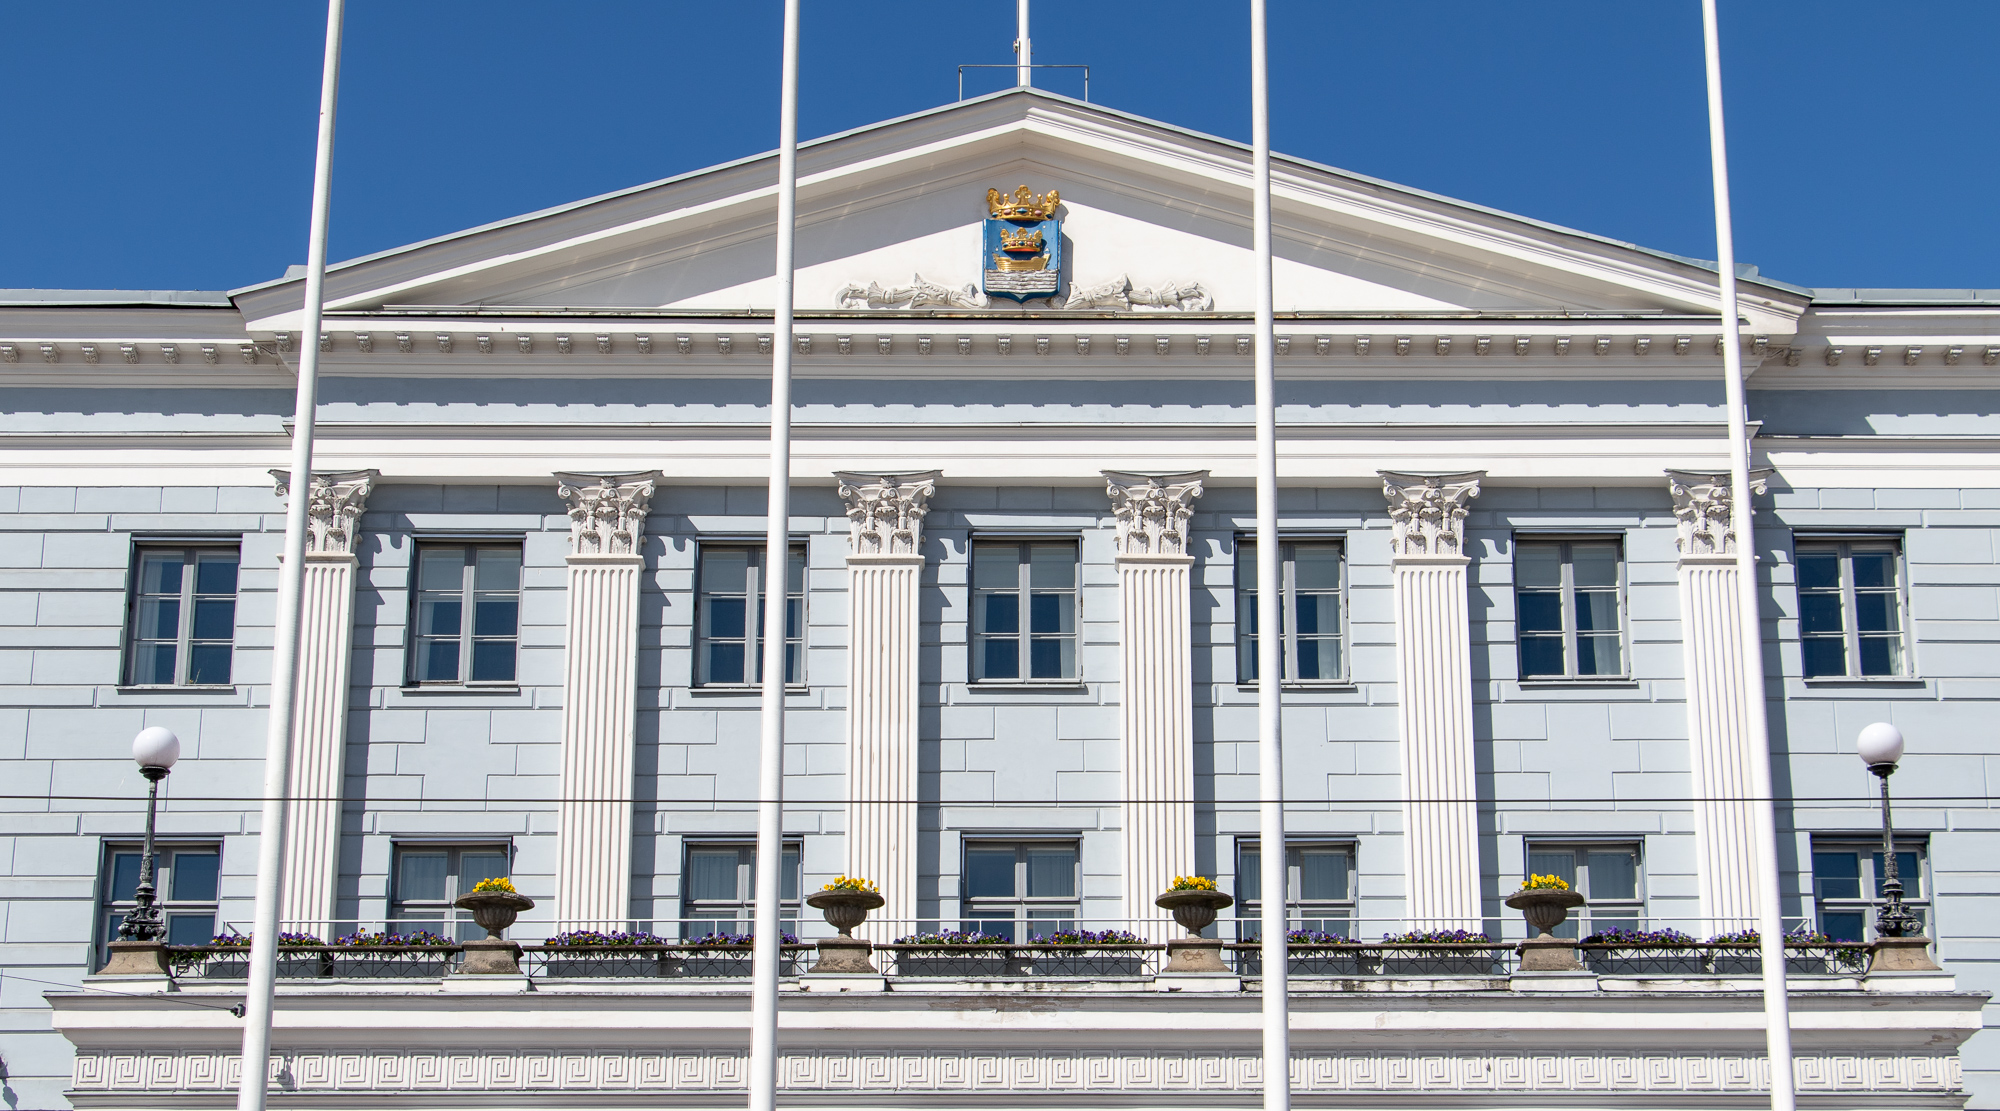 City Hall has several windows facing the Market Square. There are four flagpoles in front of the mayor's balcony. The Coat of Arms of Helsinki is above the balcony.